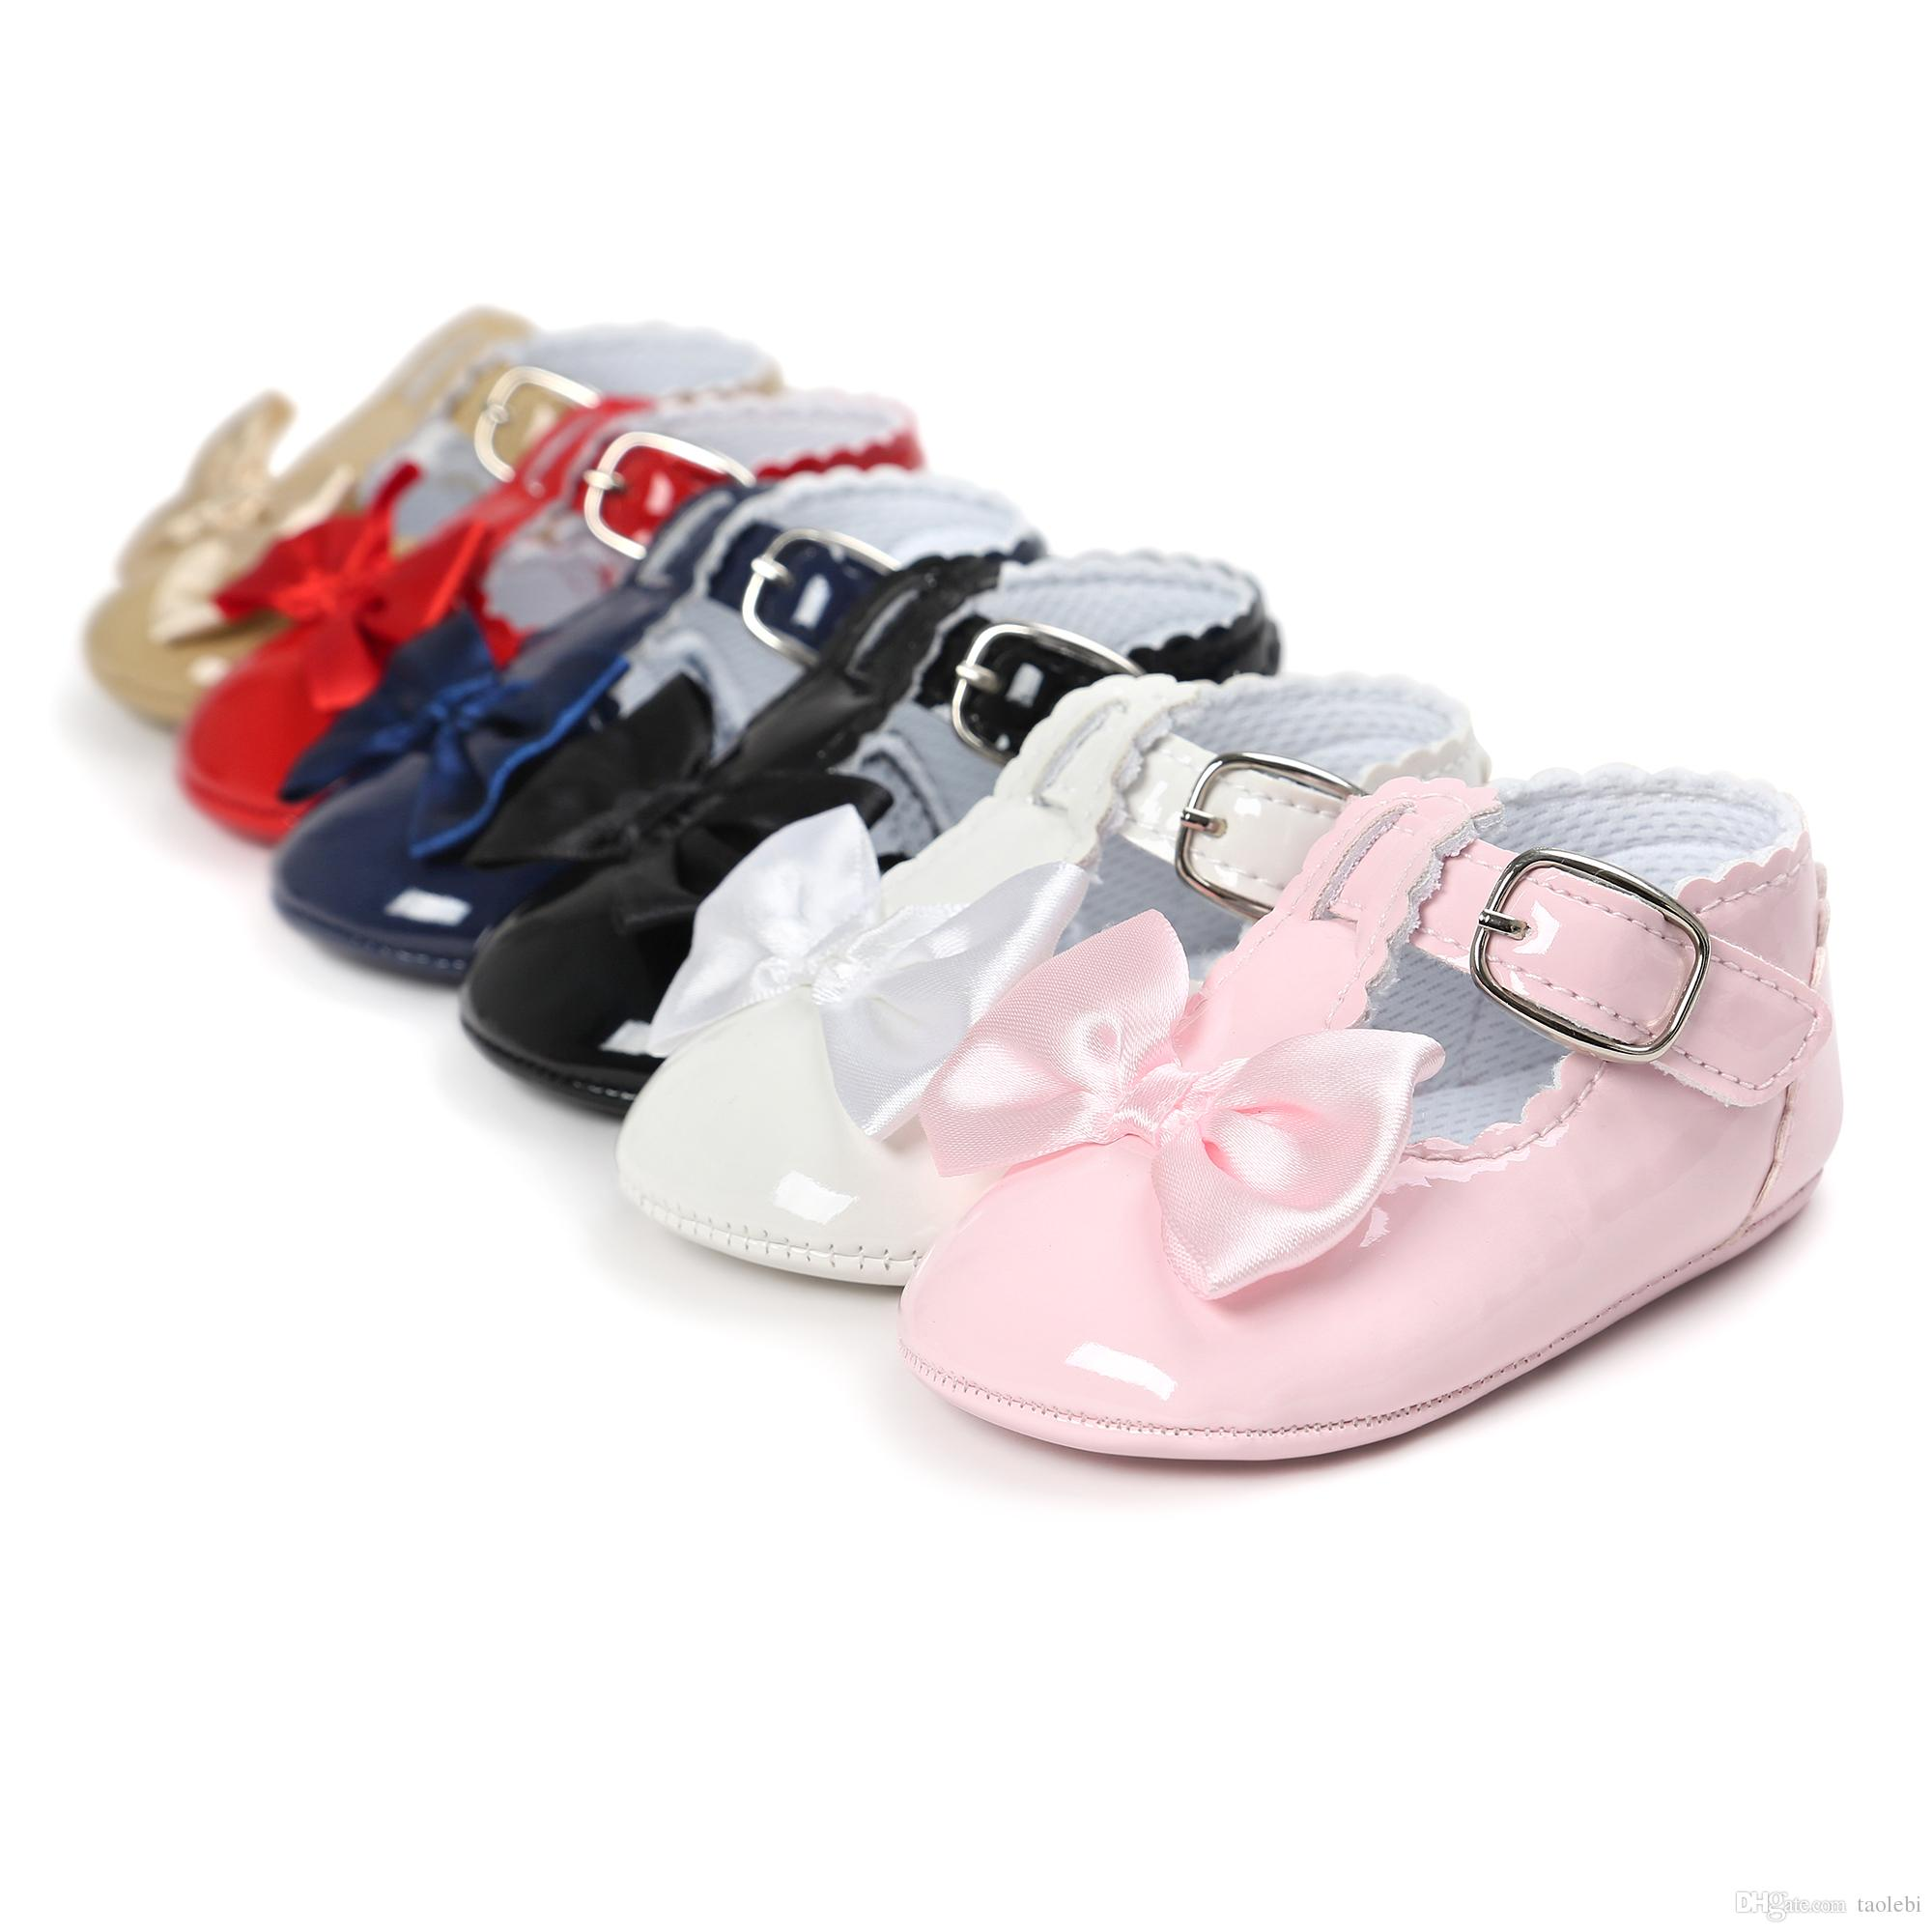 2019 2017 Pu Leather Baby Girl Shoes Fashion Bowknot Design Baby Princess  Shoes Newborn Baby Shoes Sweet Bow Design Can Mix Colors From Taolebi ea3040df87e1